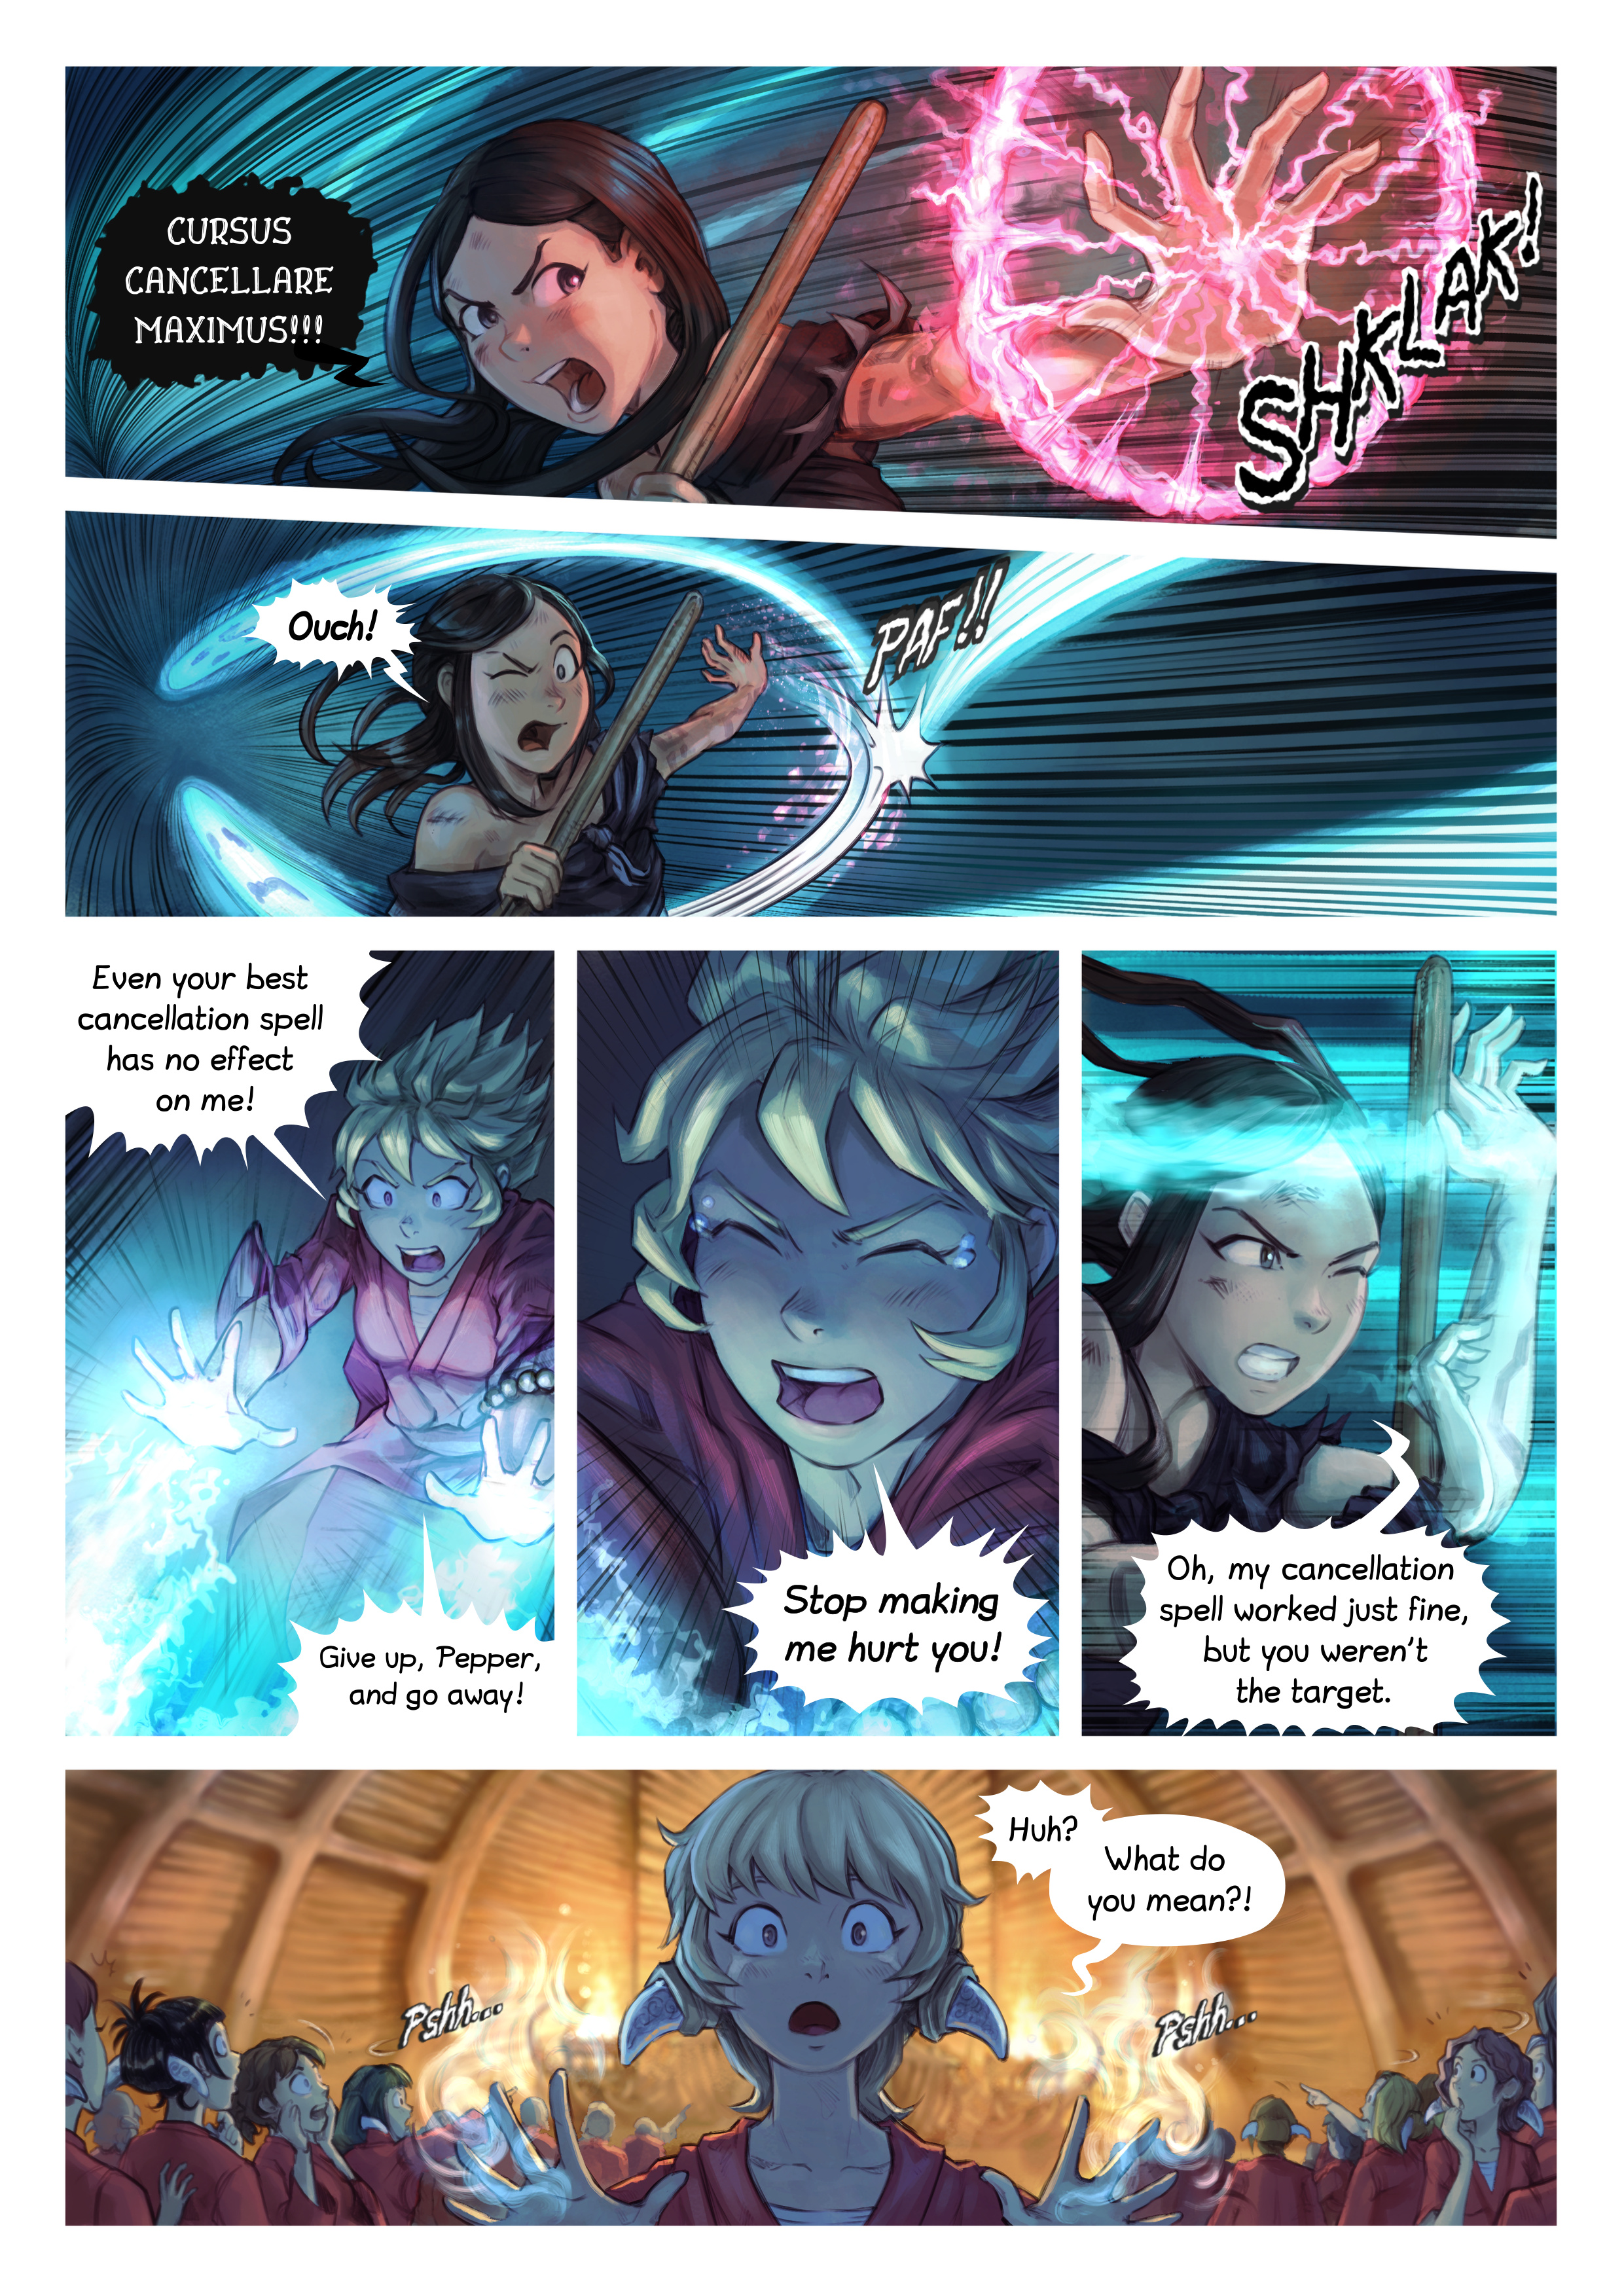 Episode 34: The Knighting of Shichimi, Page 7